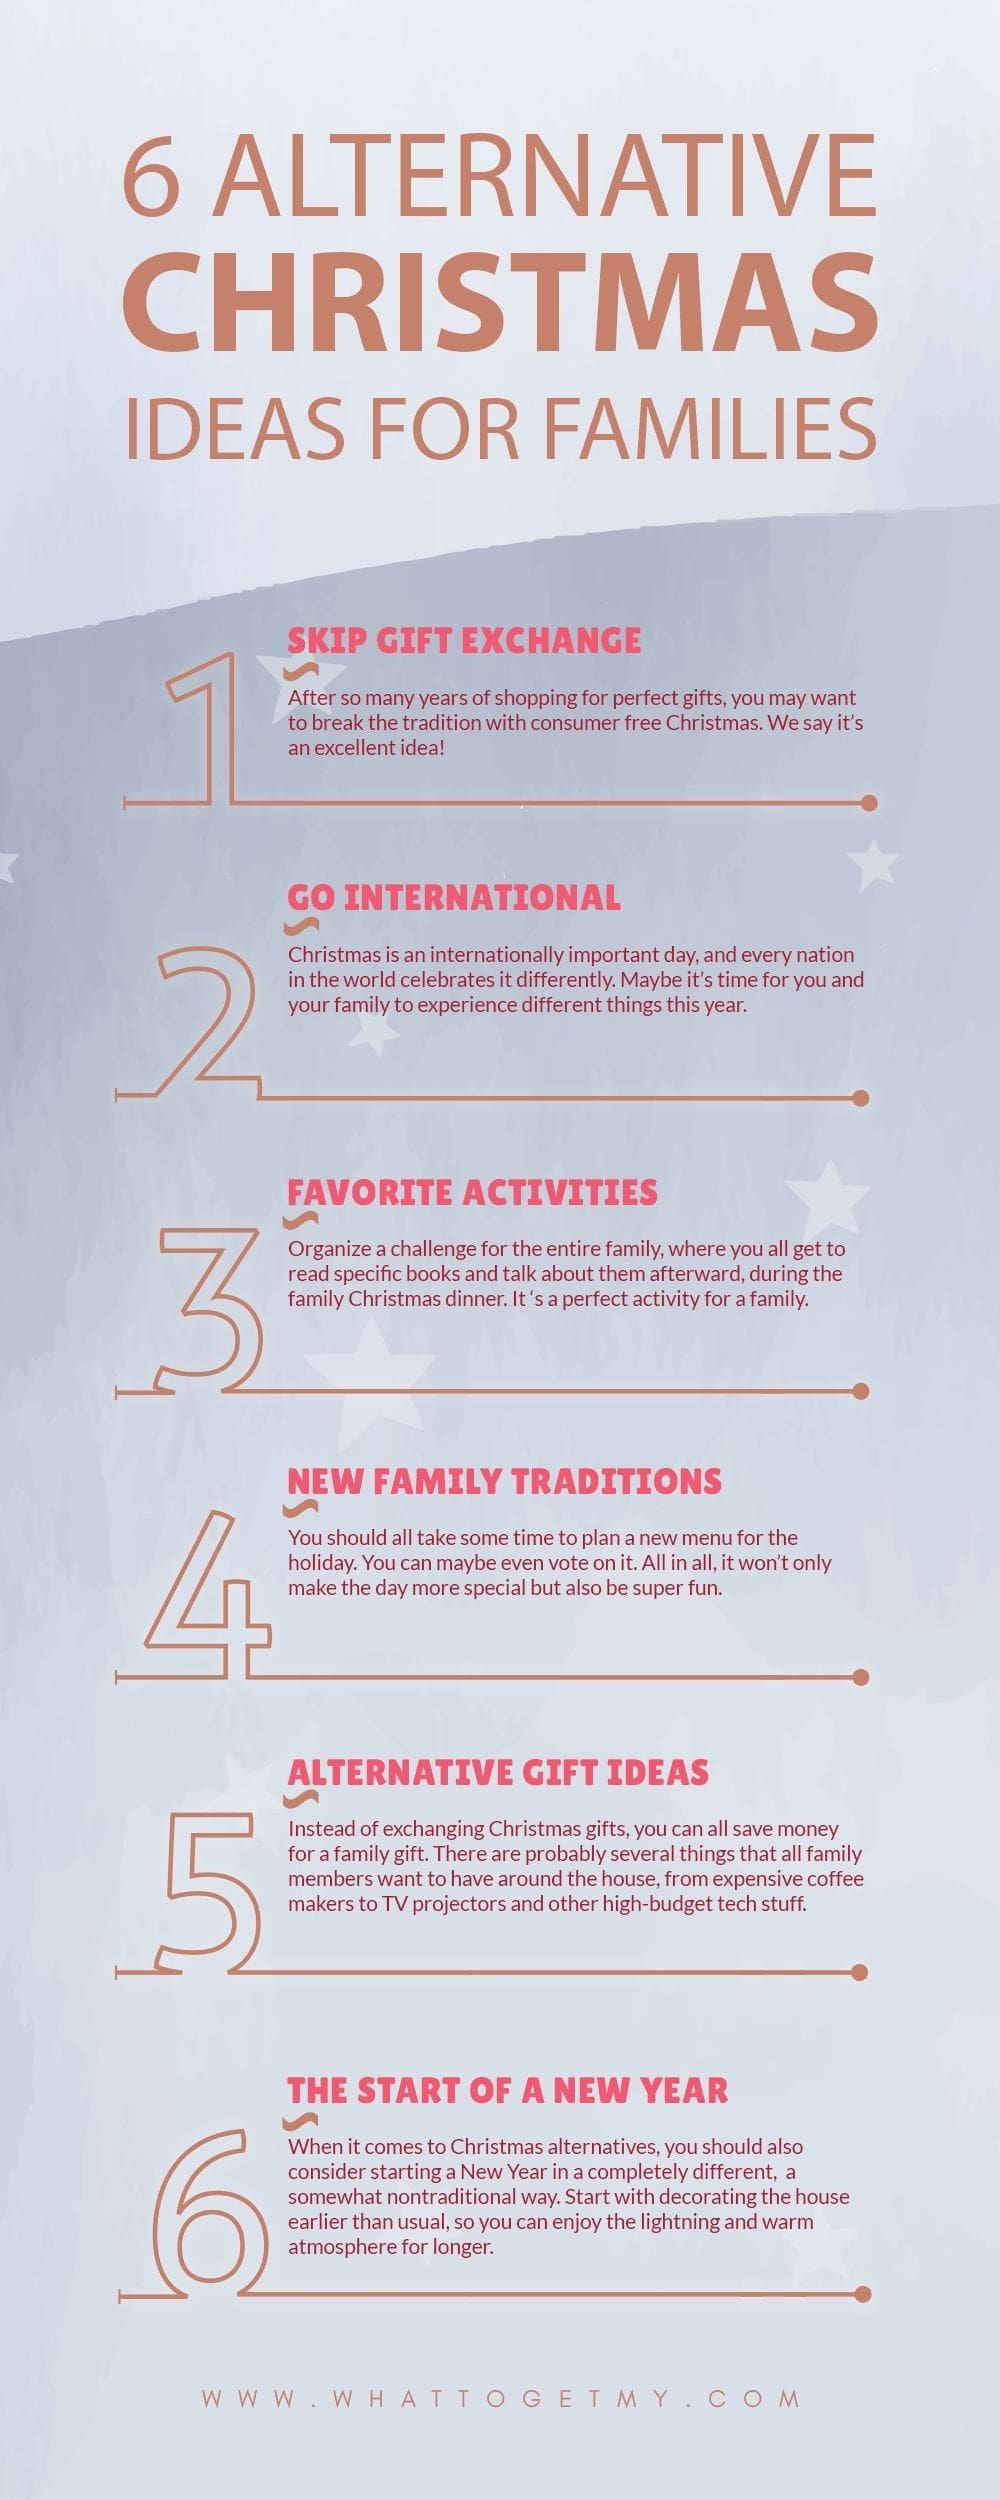 Infographic 6 Alternative Christmas Ideas for Families